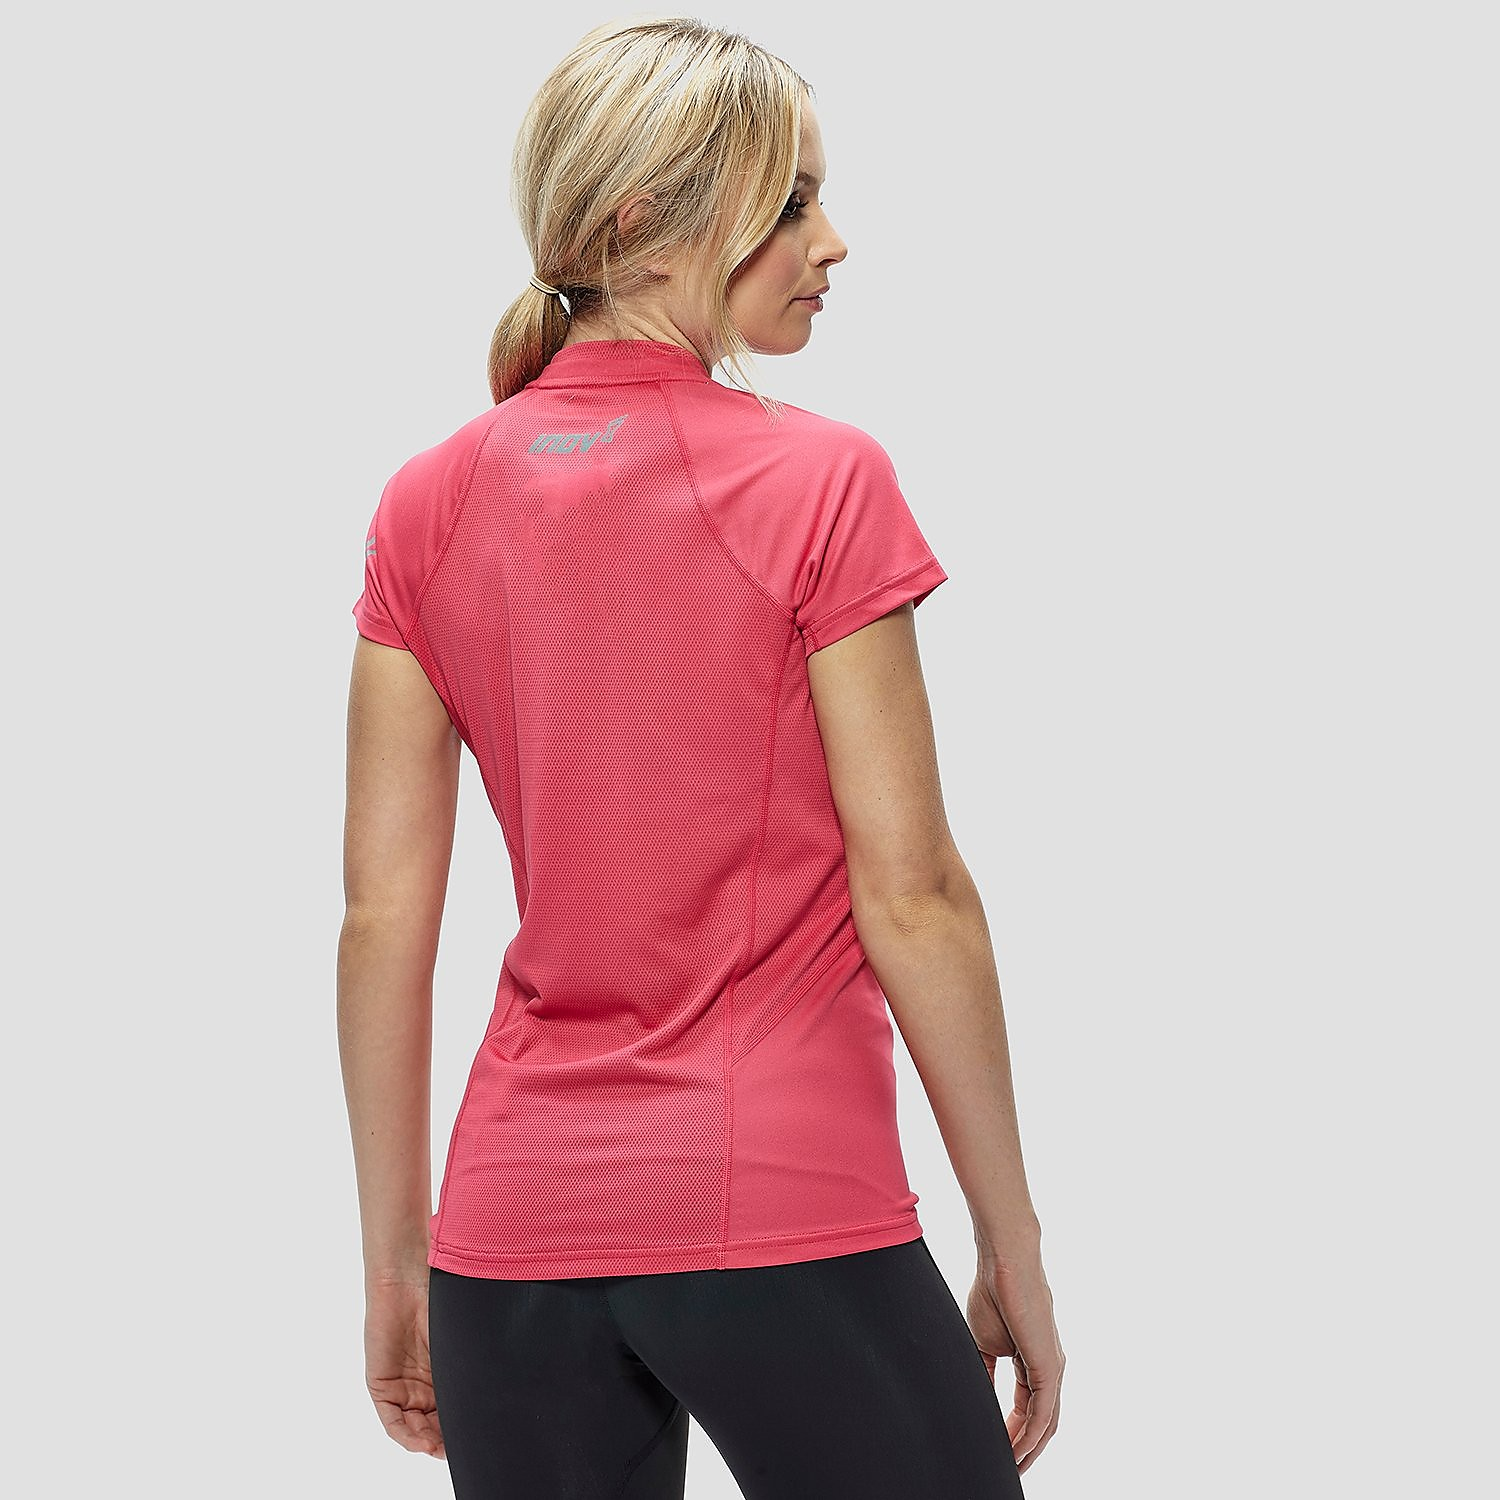 Inov-8 AT/C Women's Short Sleeve Base Layer